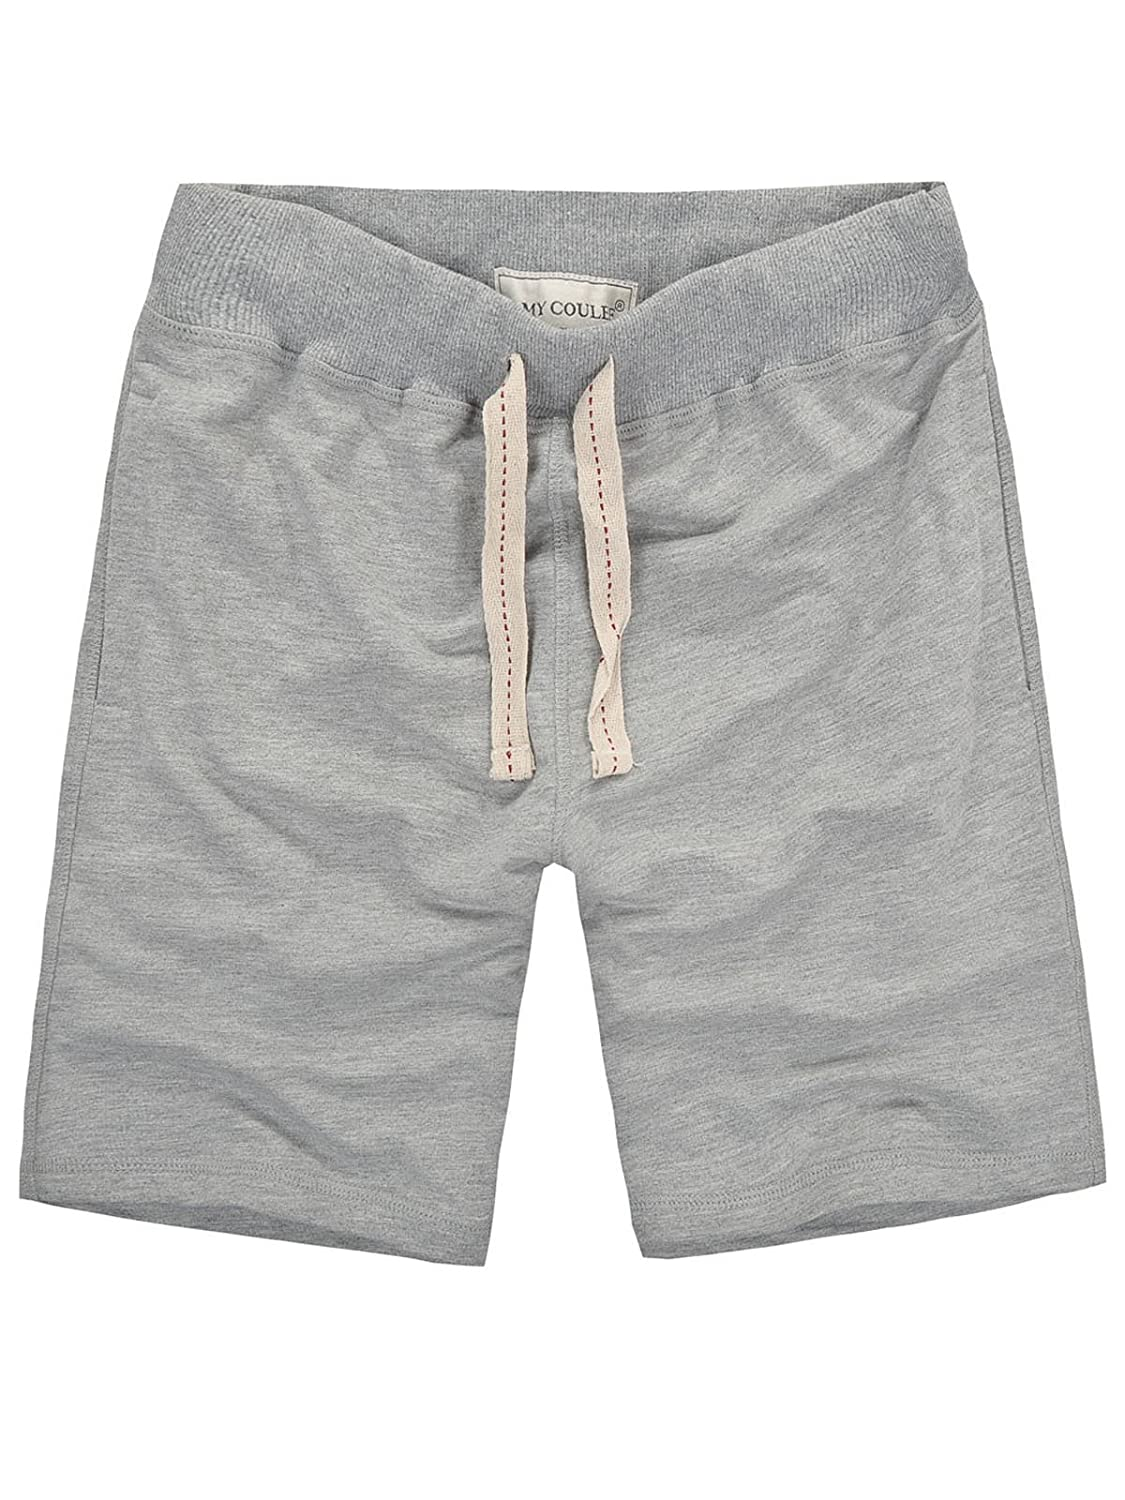 Amy Coulee Men's Casual Shorts (XL, gray)